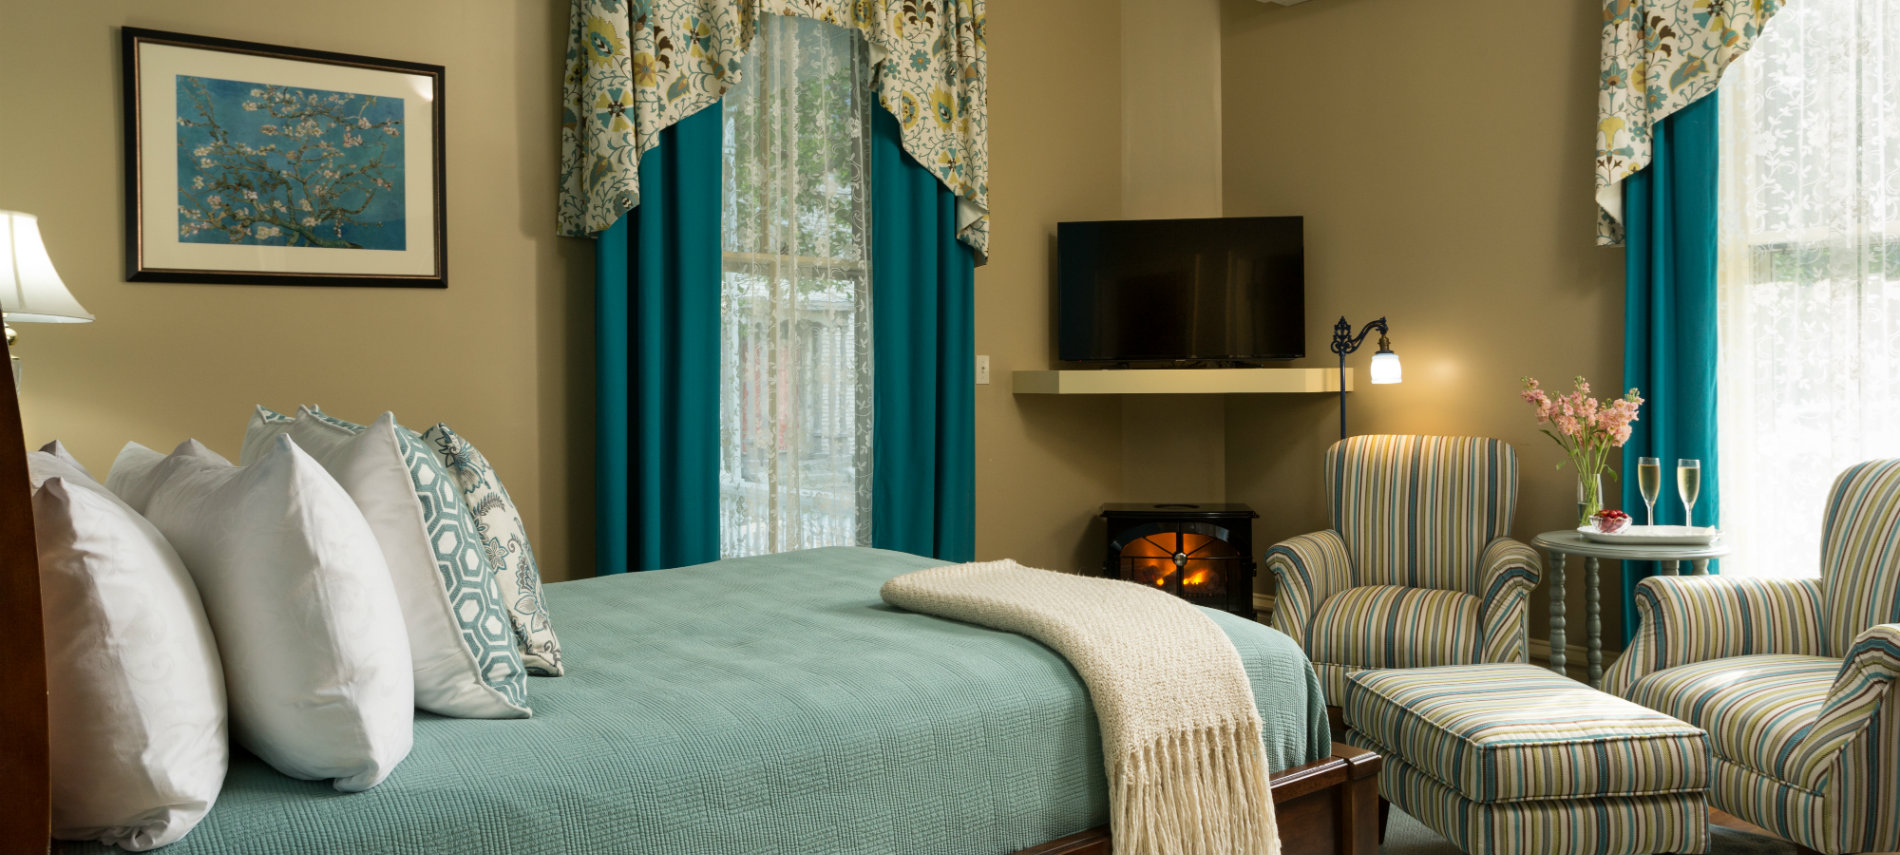 A guest room with soothing colors of green, tan and blue in the bedding and chair covers.